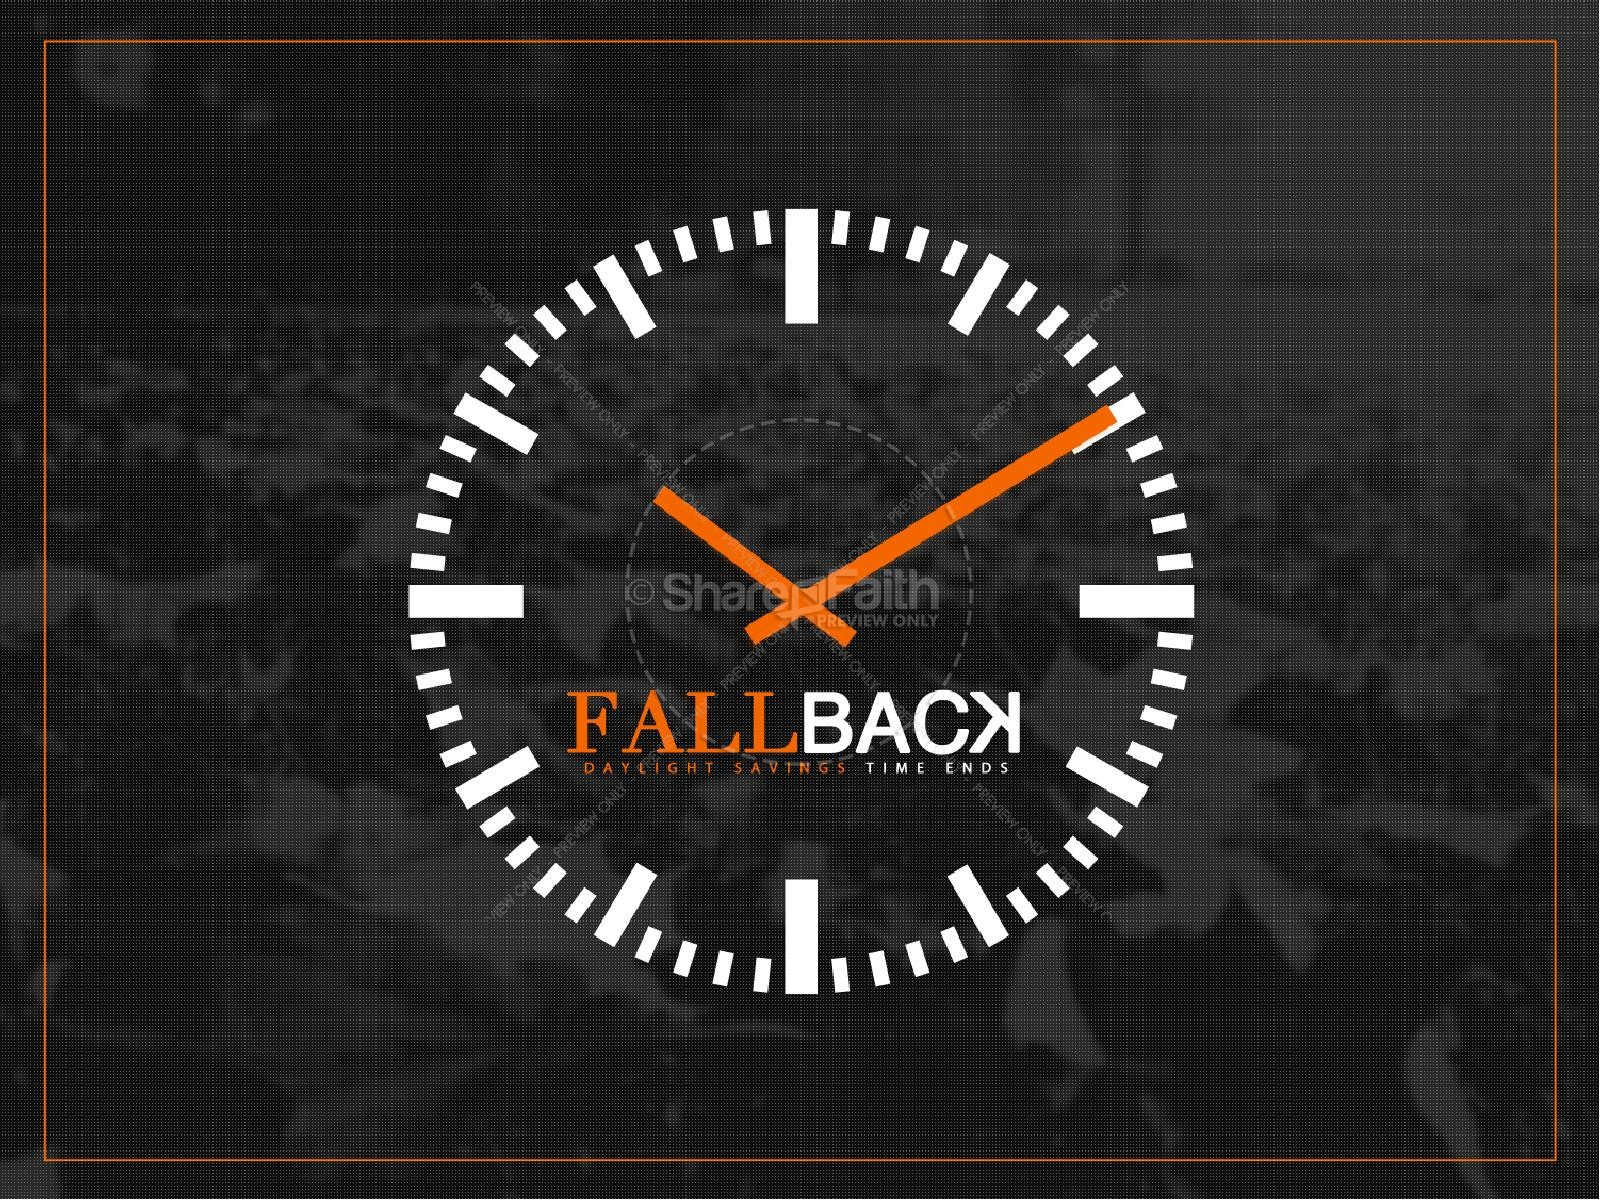 Fall Back Daylight Savings Ministry PowerPoint